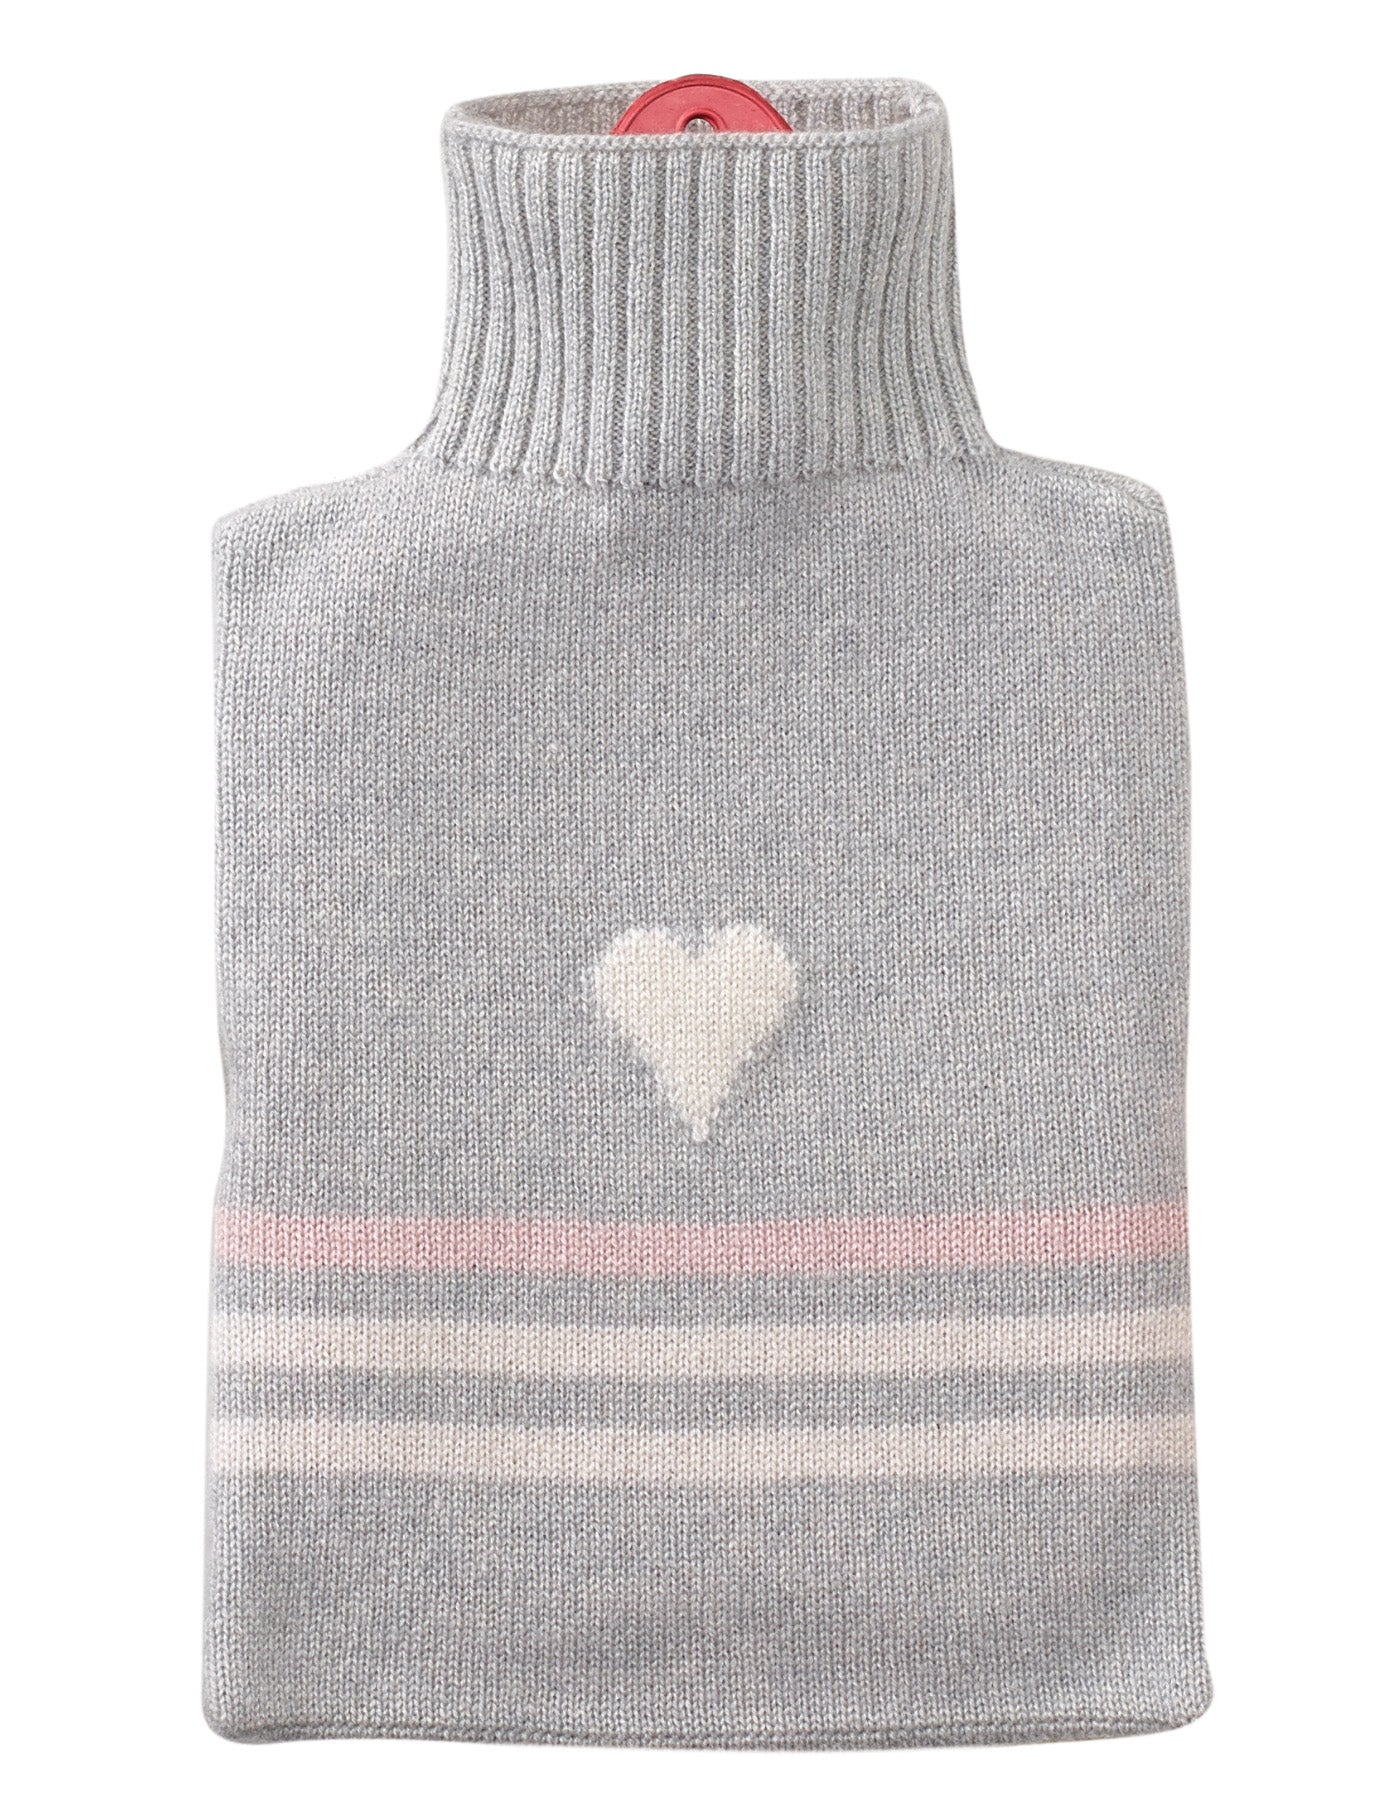 grey Cashmere Hot Water Bottle